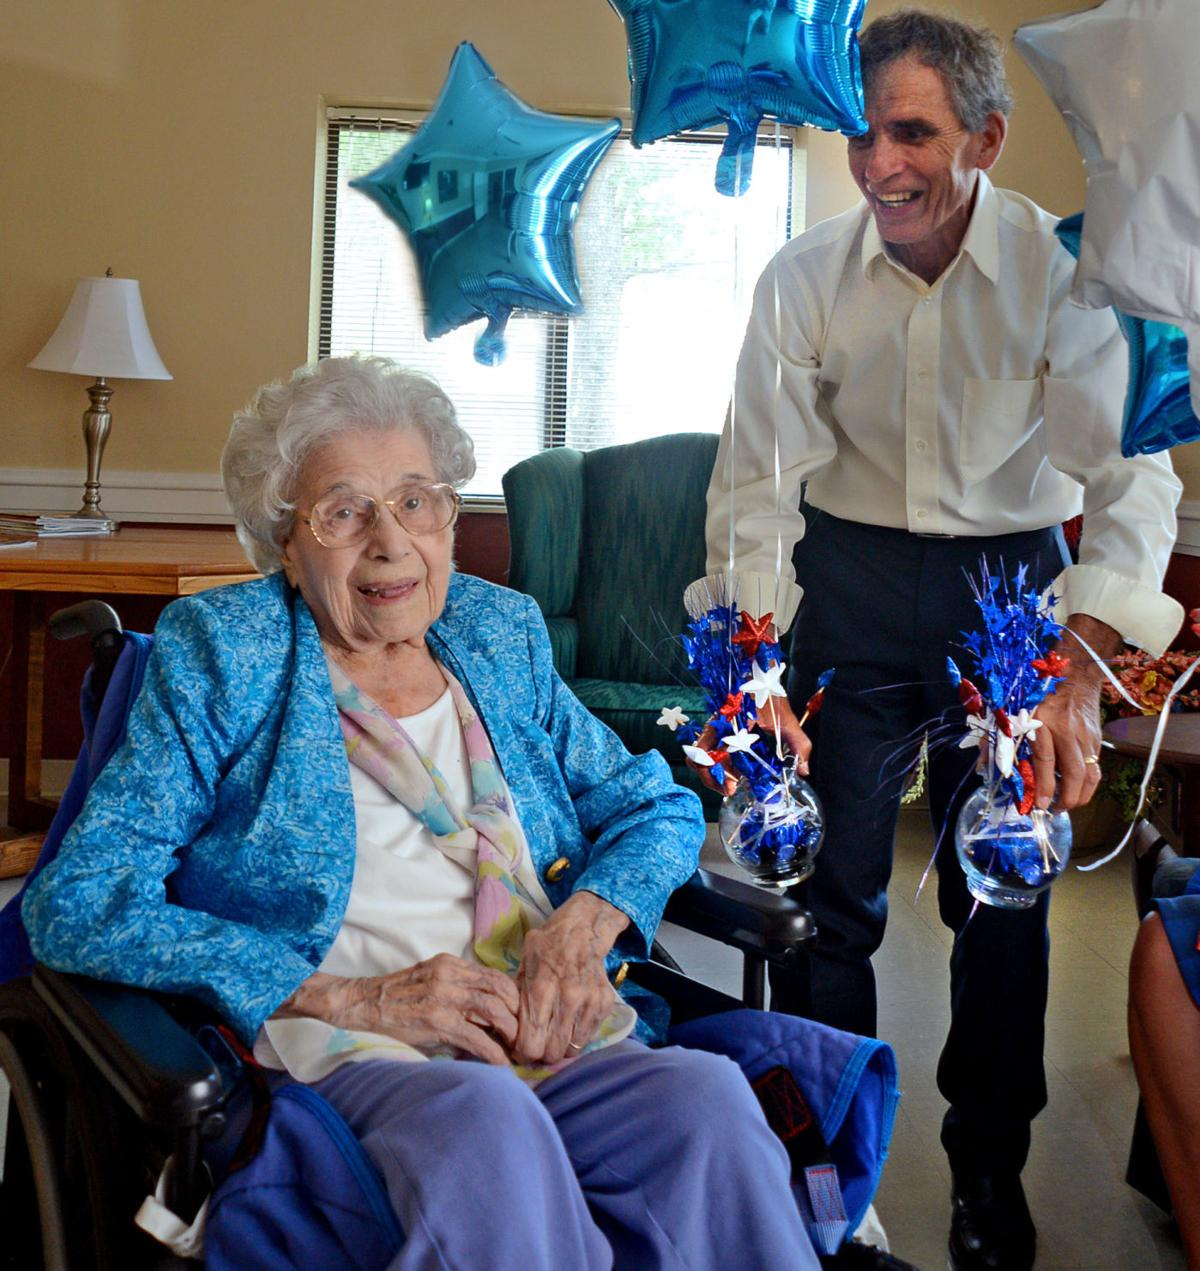 Pinehurst Woman Celebrating Her 105th Birthday on Independence Day